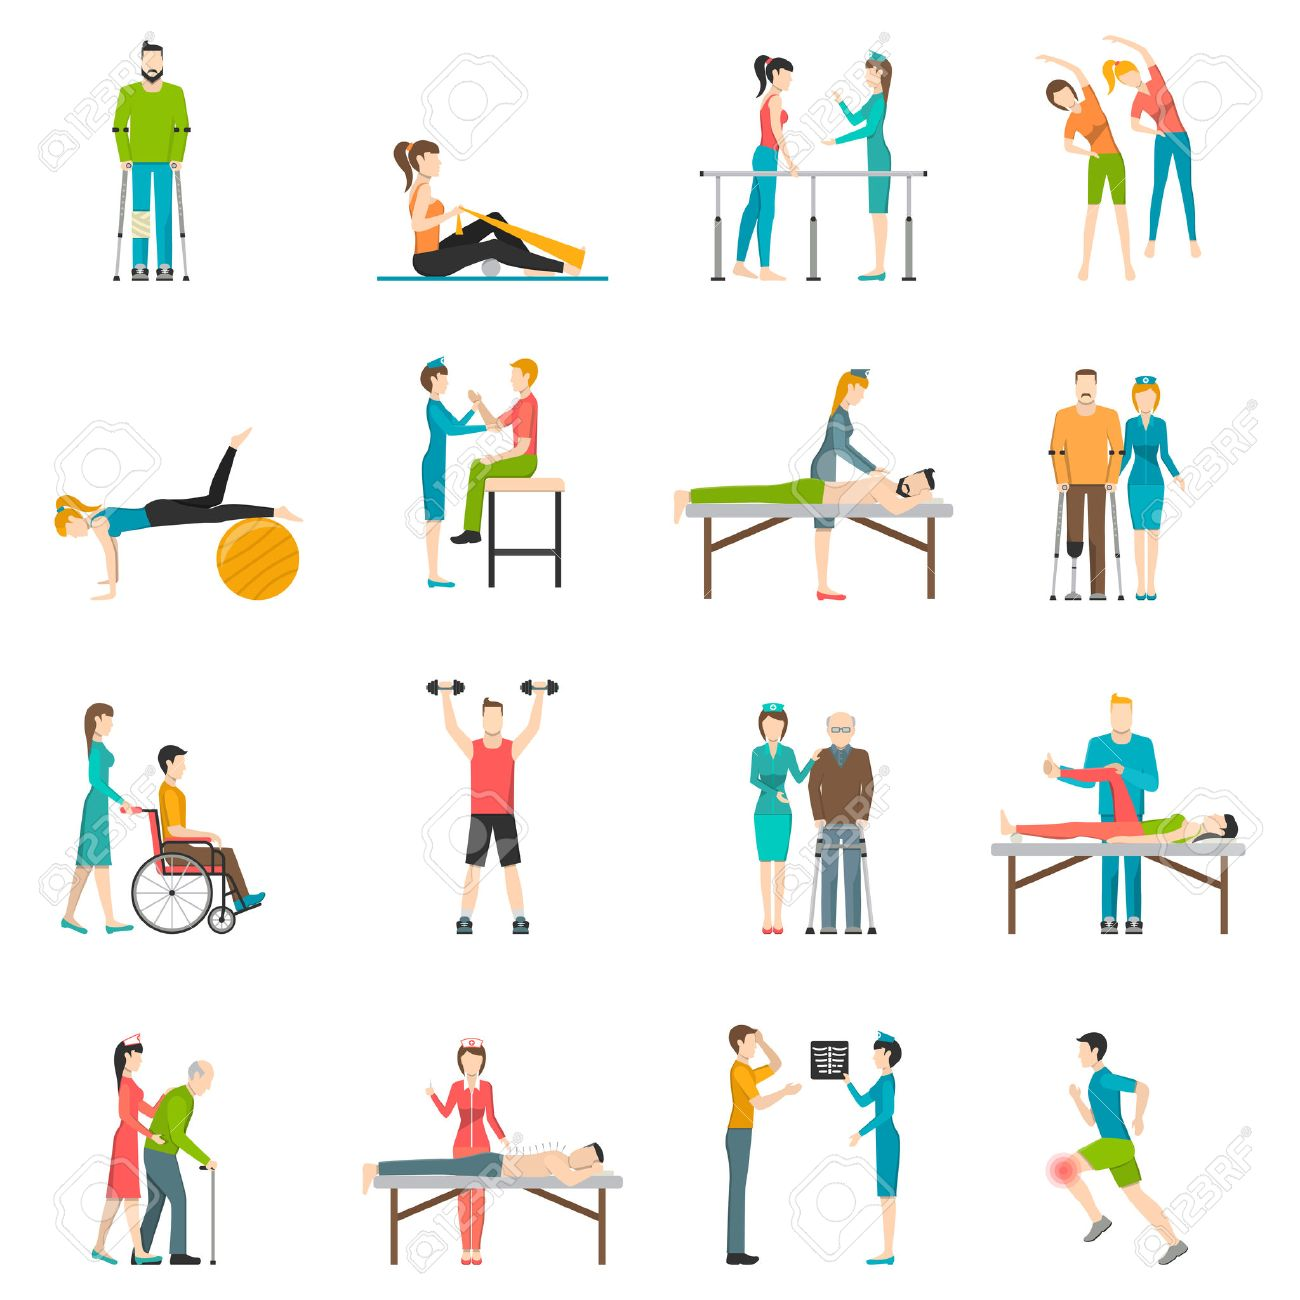 Physiotherapy rehabilitation flat color icons with doctor nurse and patients involved in physical exercises massage and chiropractic isolated vector illustration - 51142960